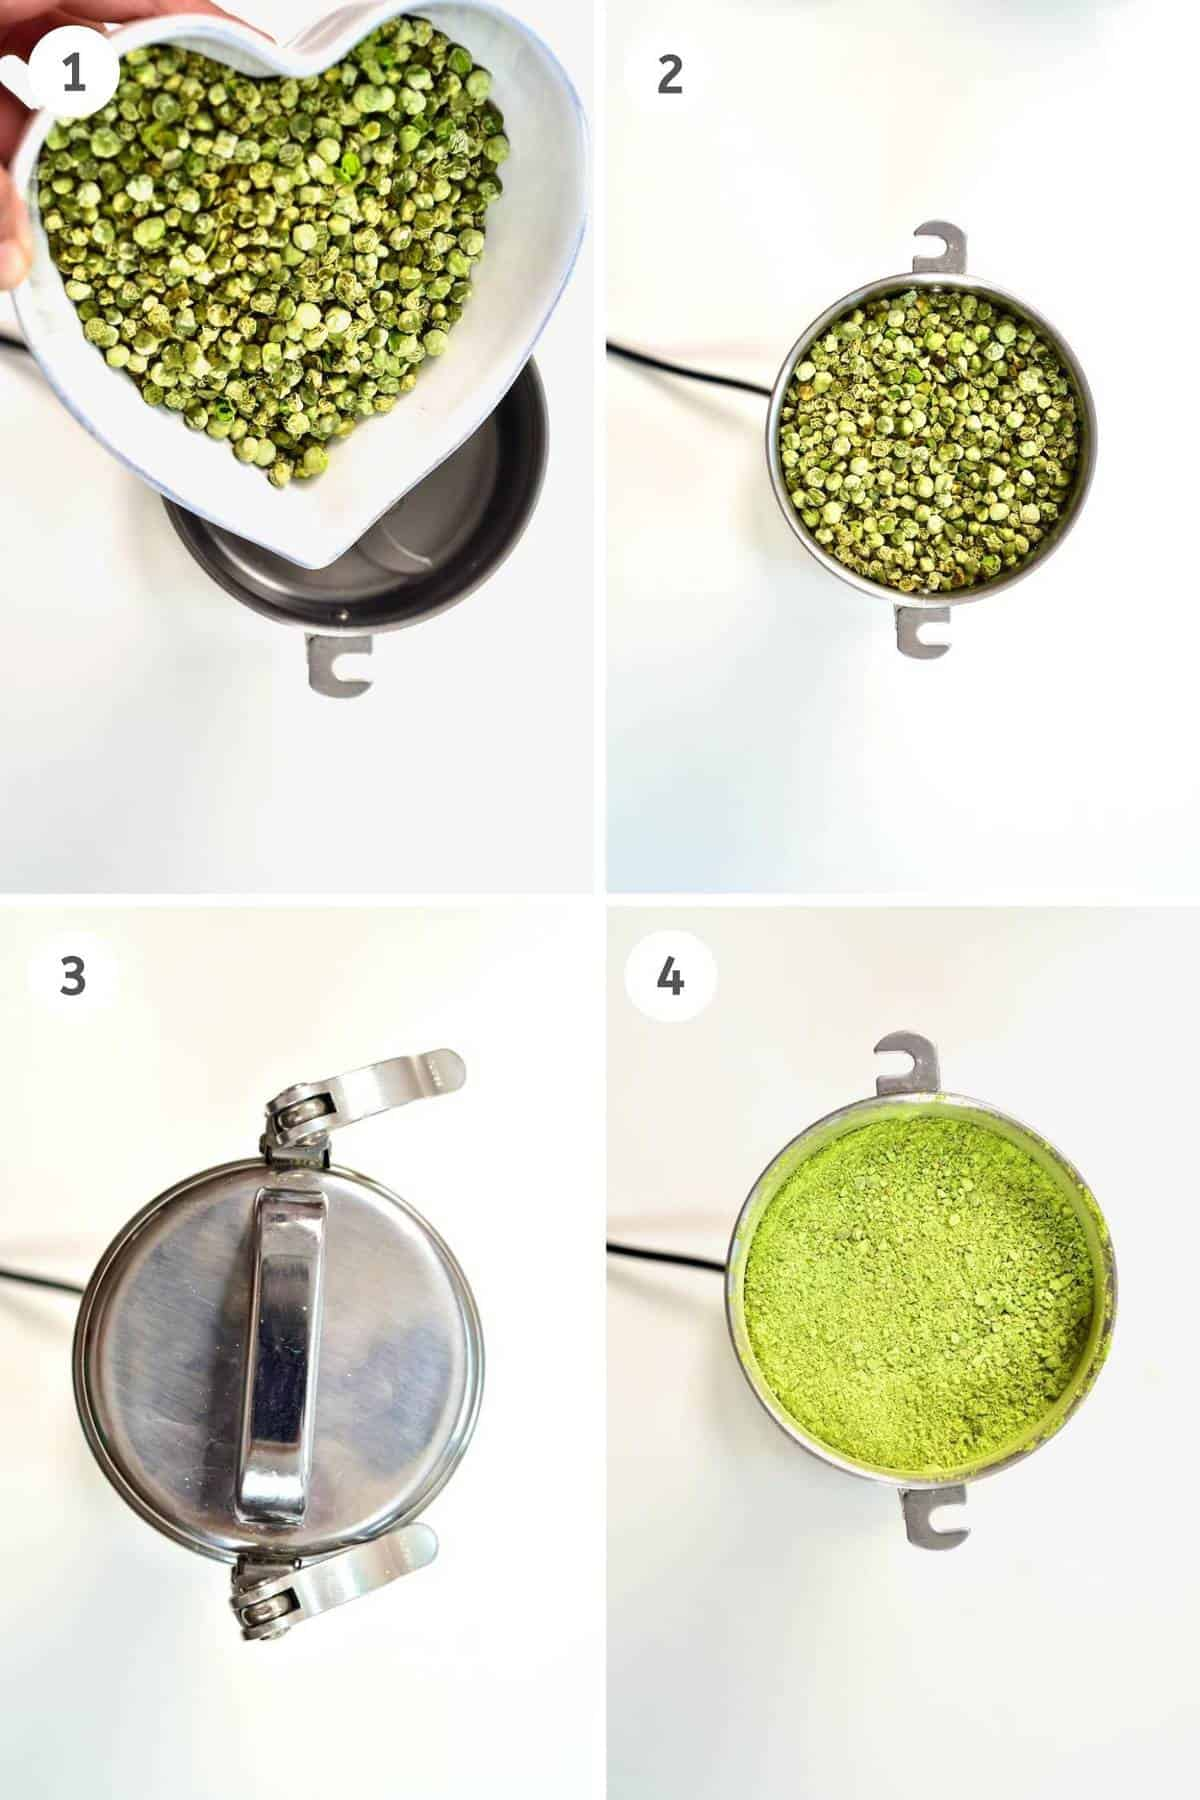 Collage of grinding dried peas into powder